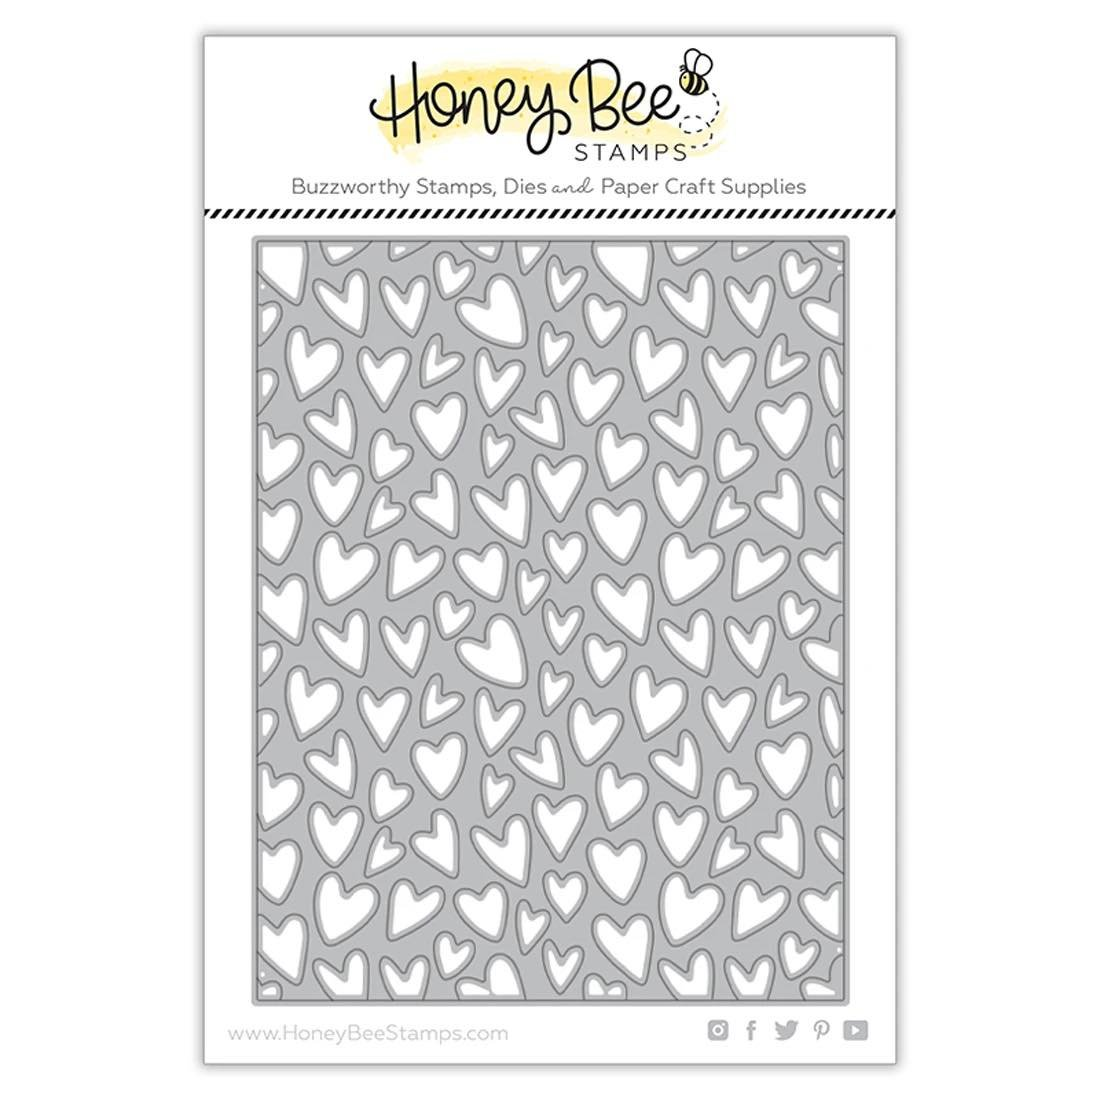 Honey Bee Stamps - Whimsical Hearts A2 Cover Plate